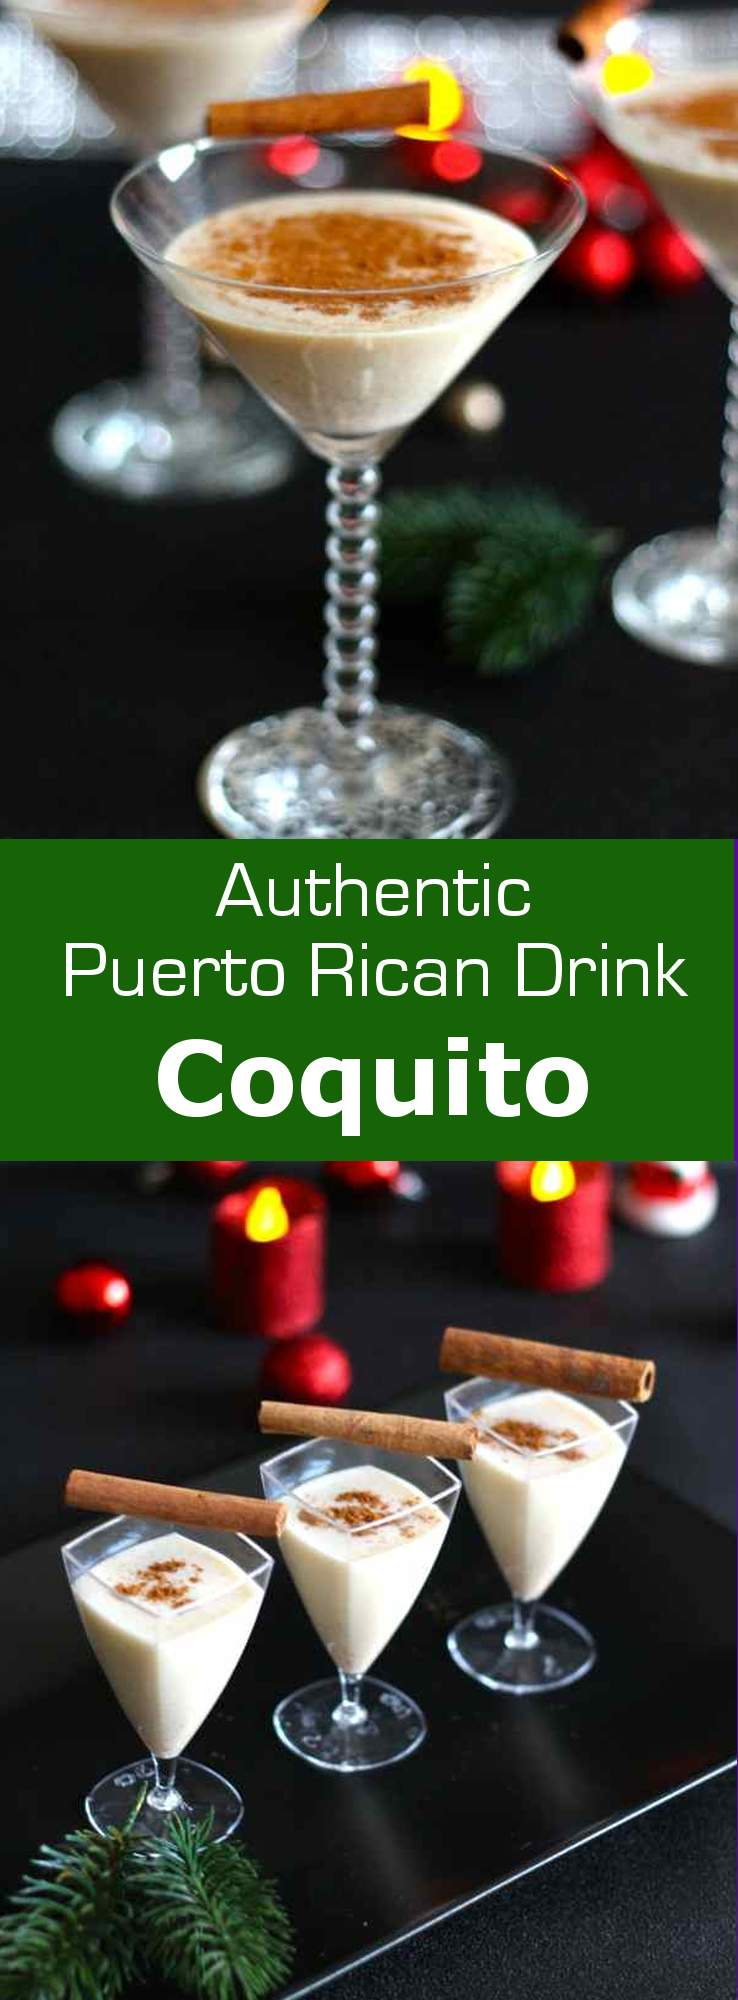 Coquito traditional puerto rican recipe 196 flavors coquito is the traditional puerto rican christmas drink that is no other than an eggnog with forumfinder Choice Image